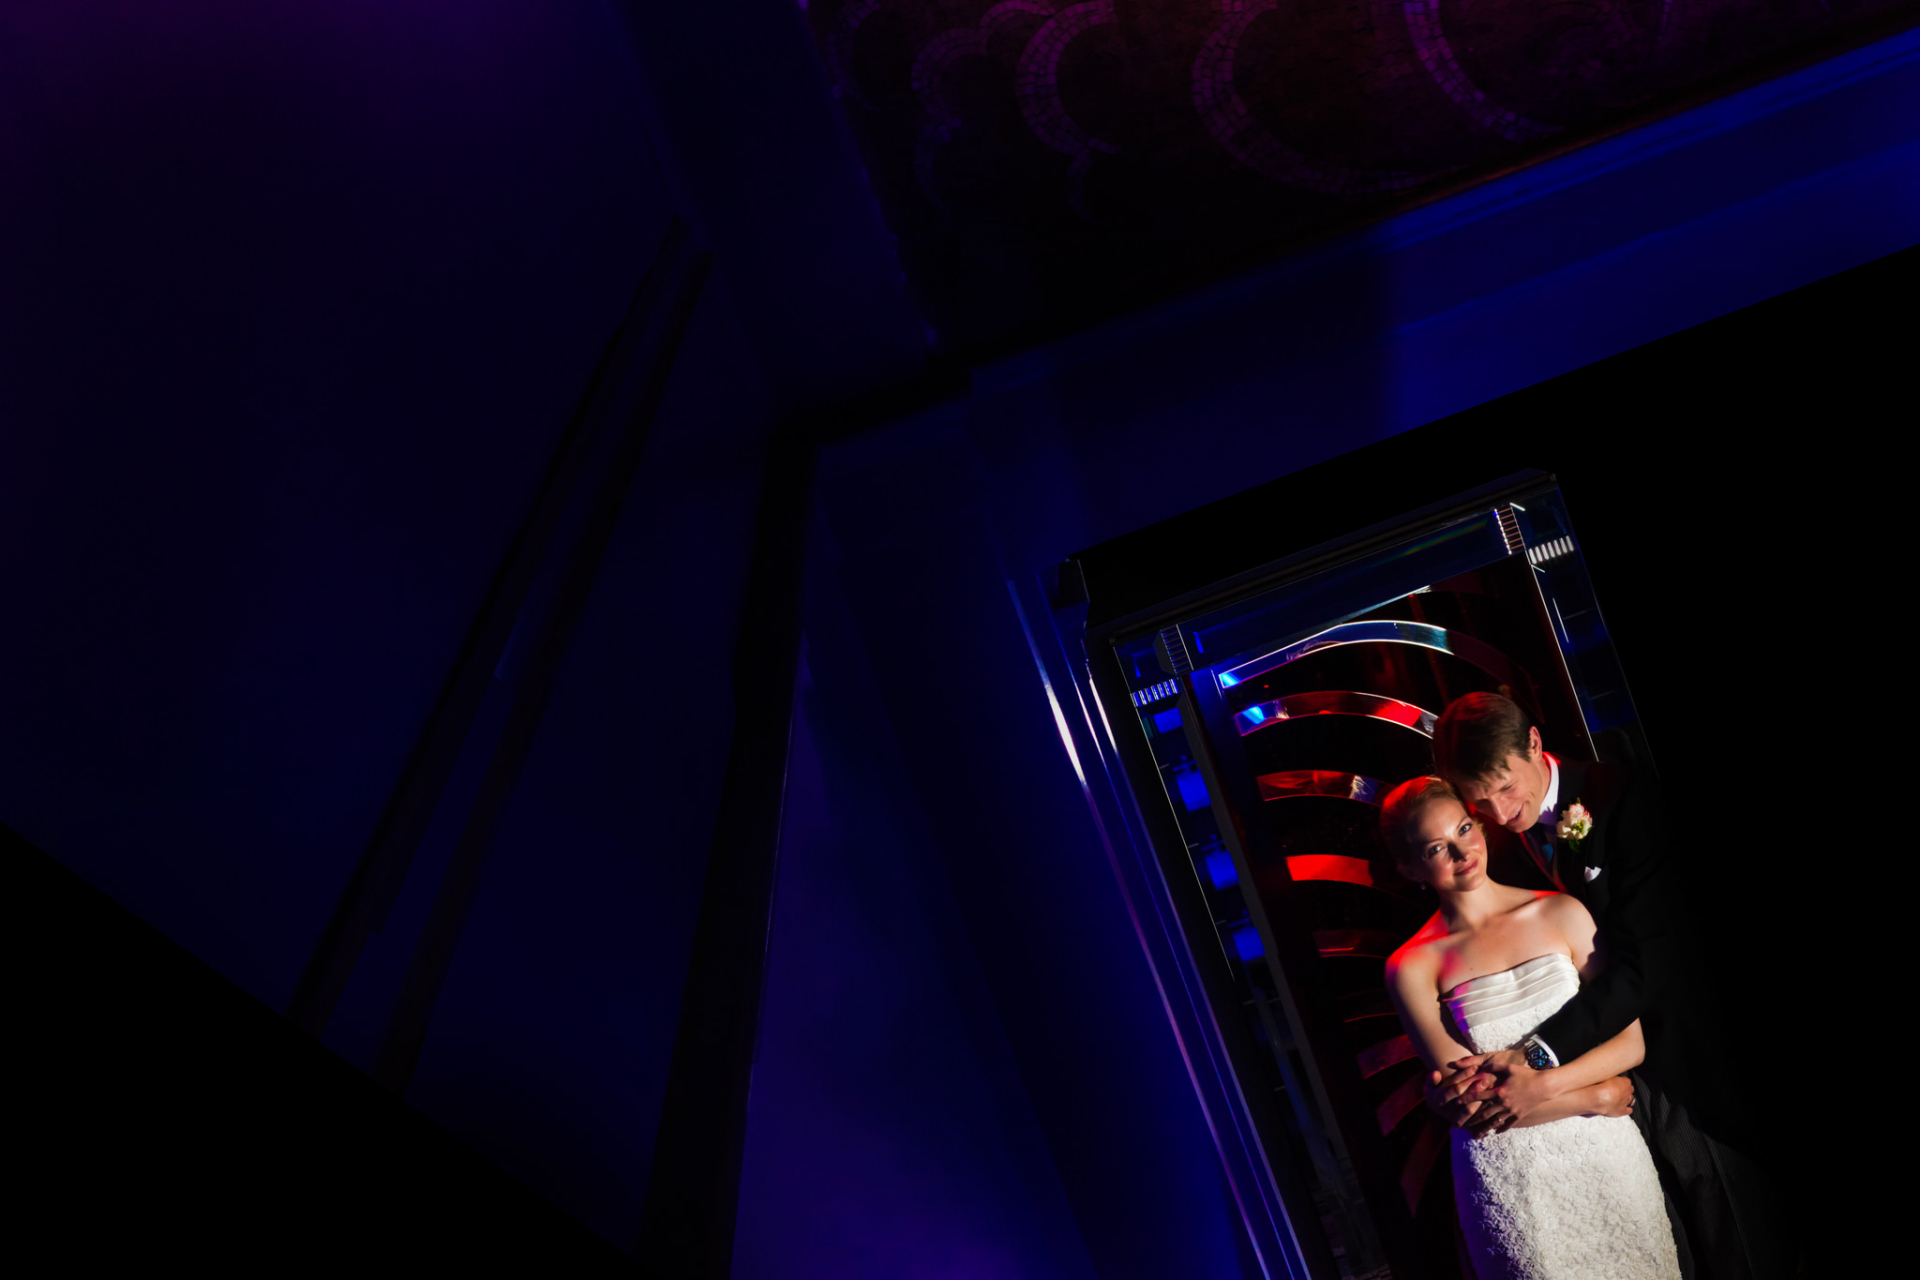 Sketch Restaurant - London Elopement Venue Images | At last alone, the bride and groom stand together